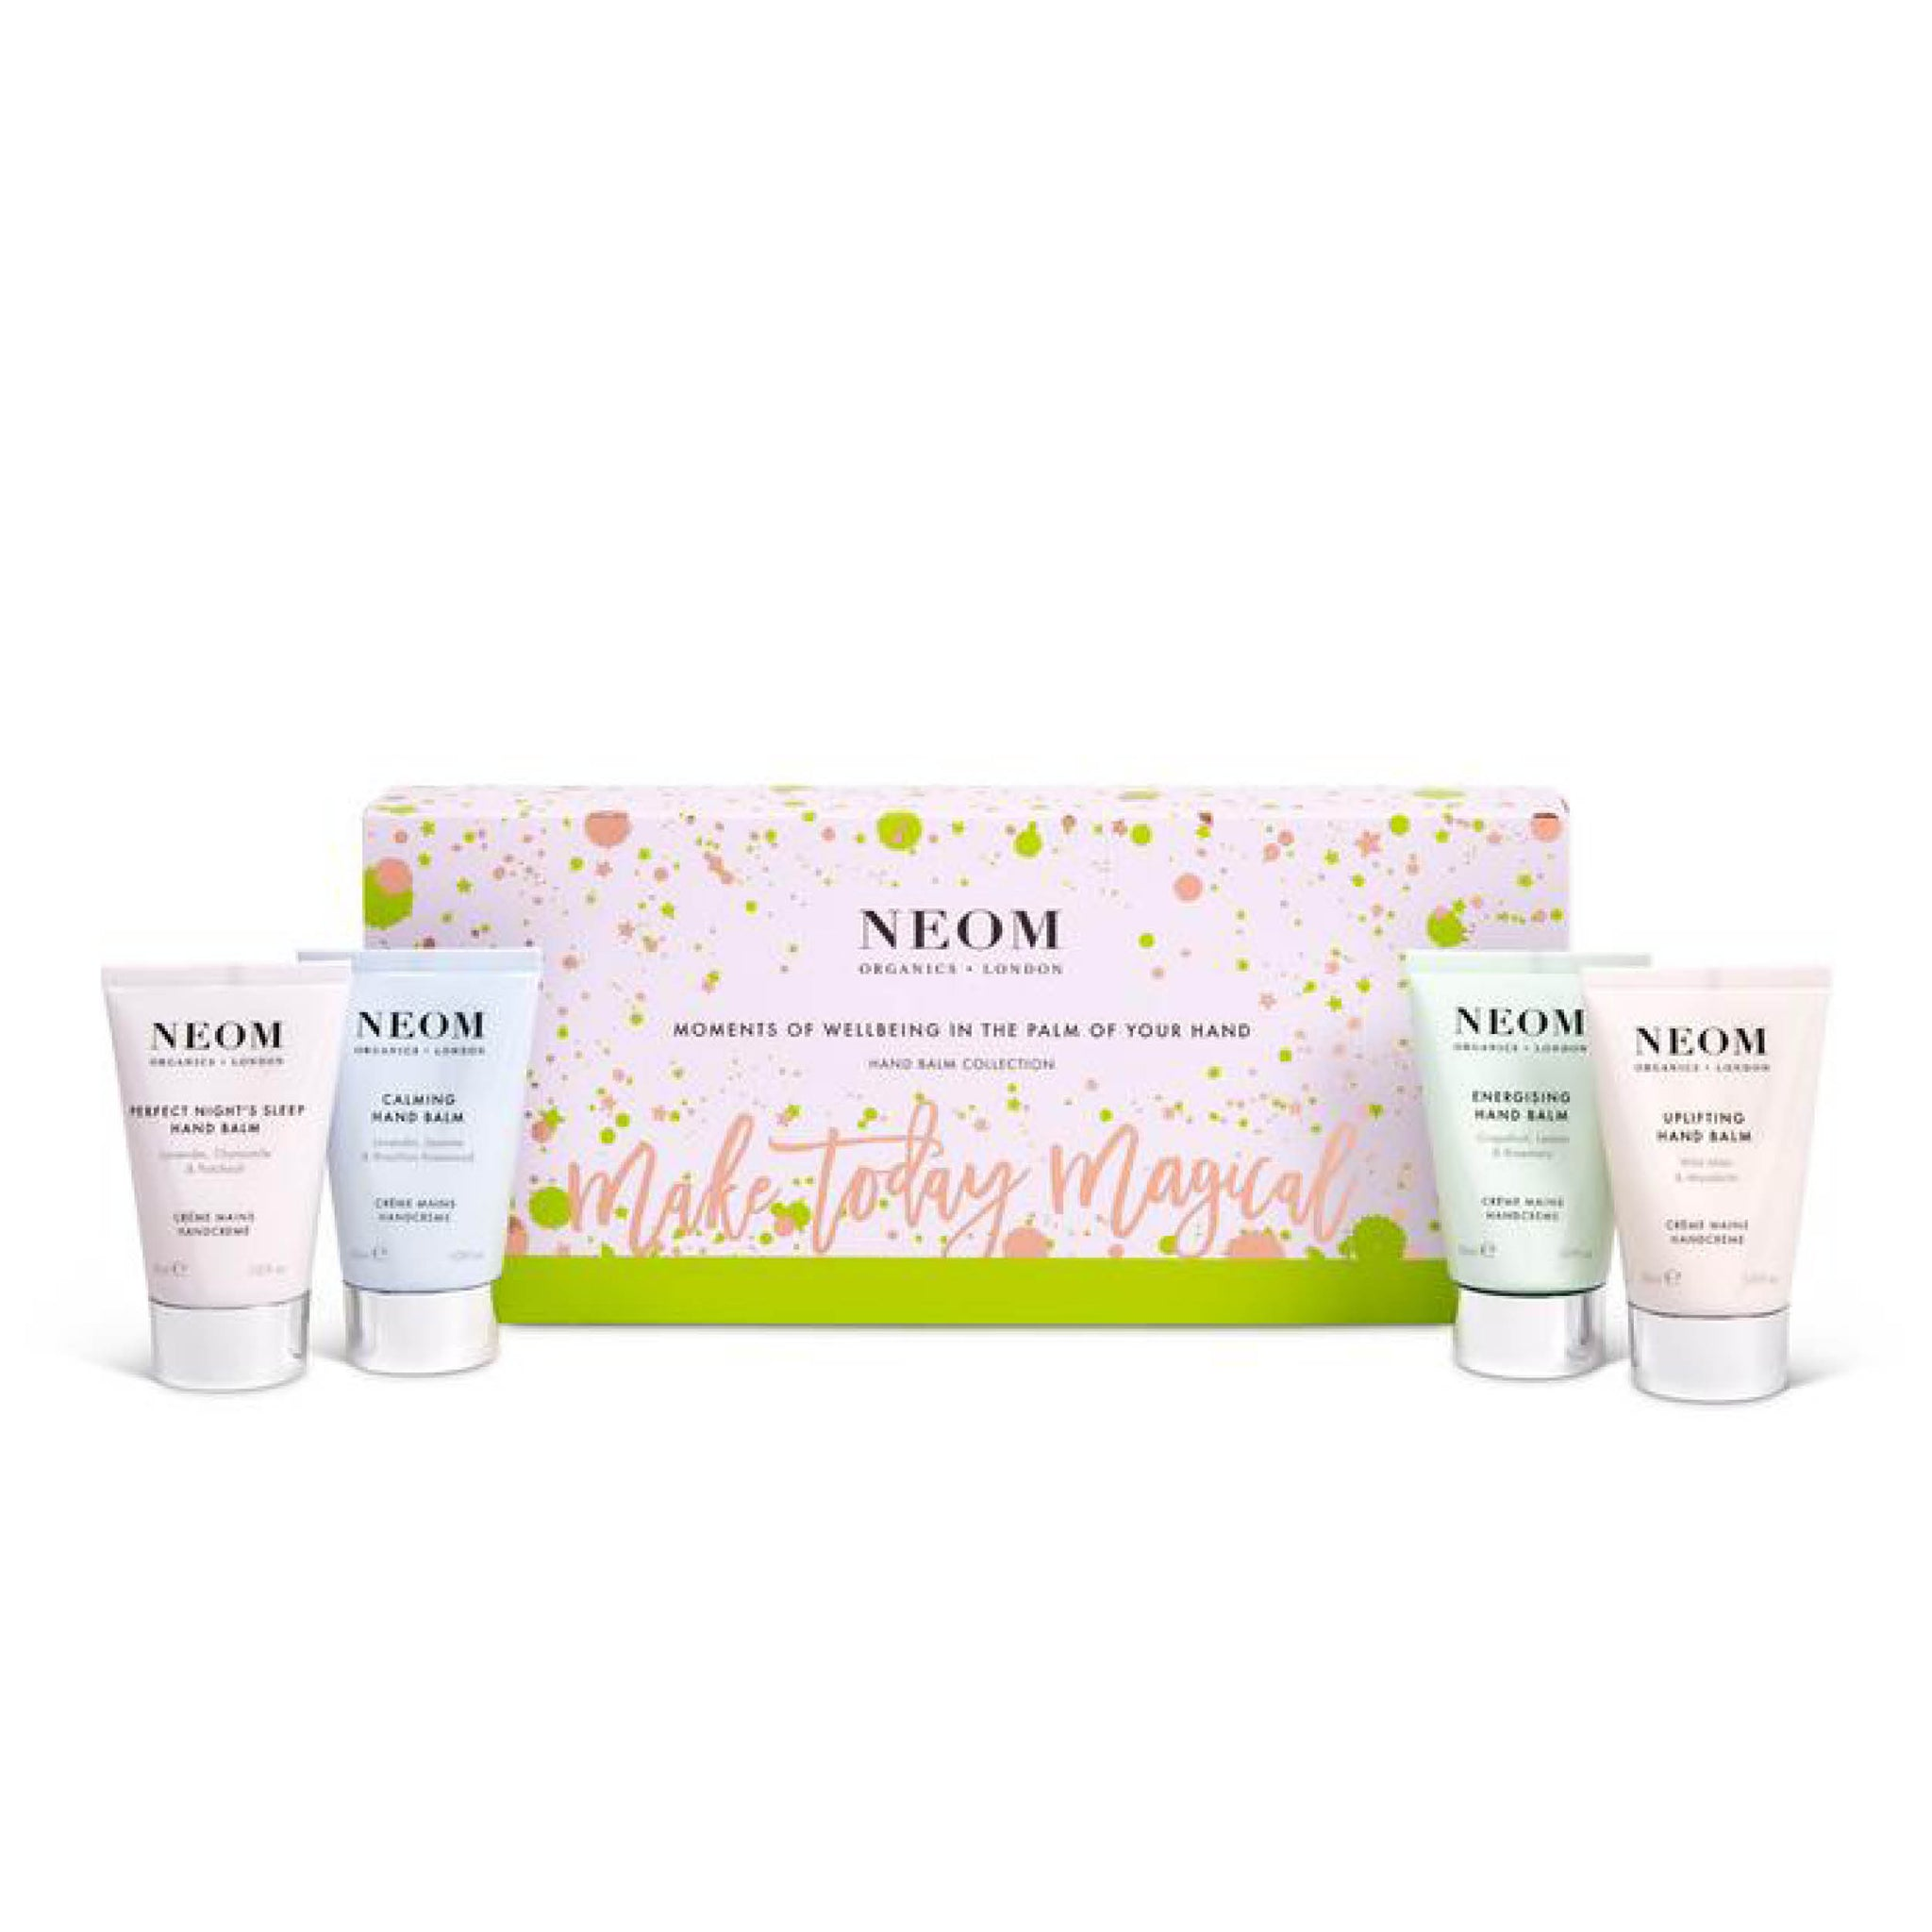 Neom Moments of Wellbeing in the Palm of Your Hand Gift Set